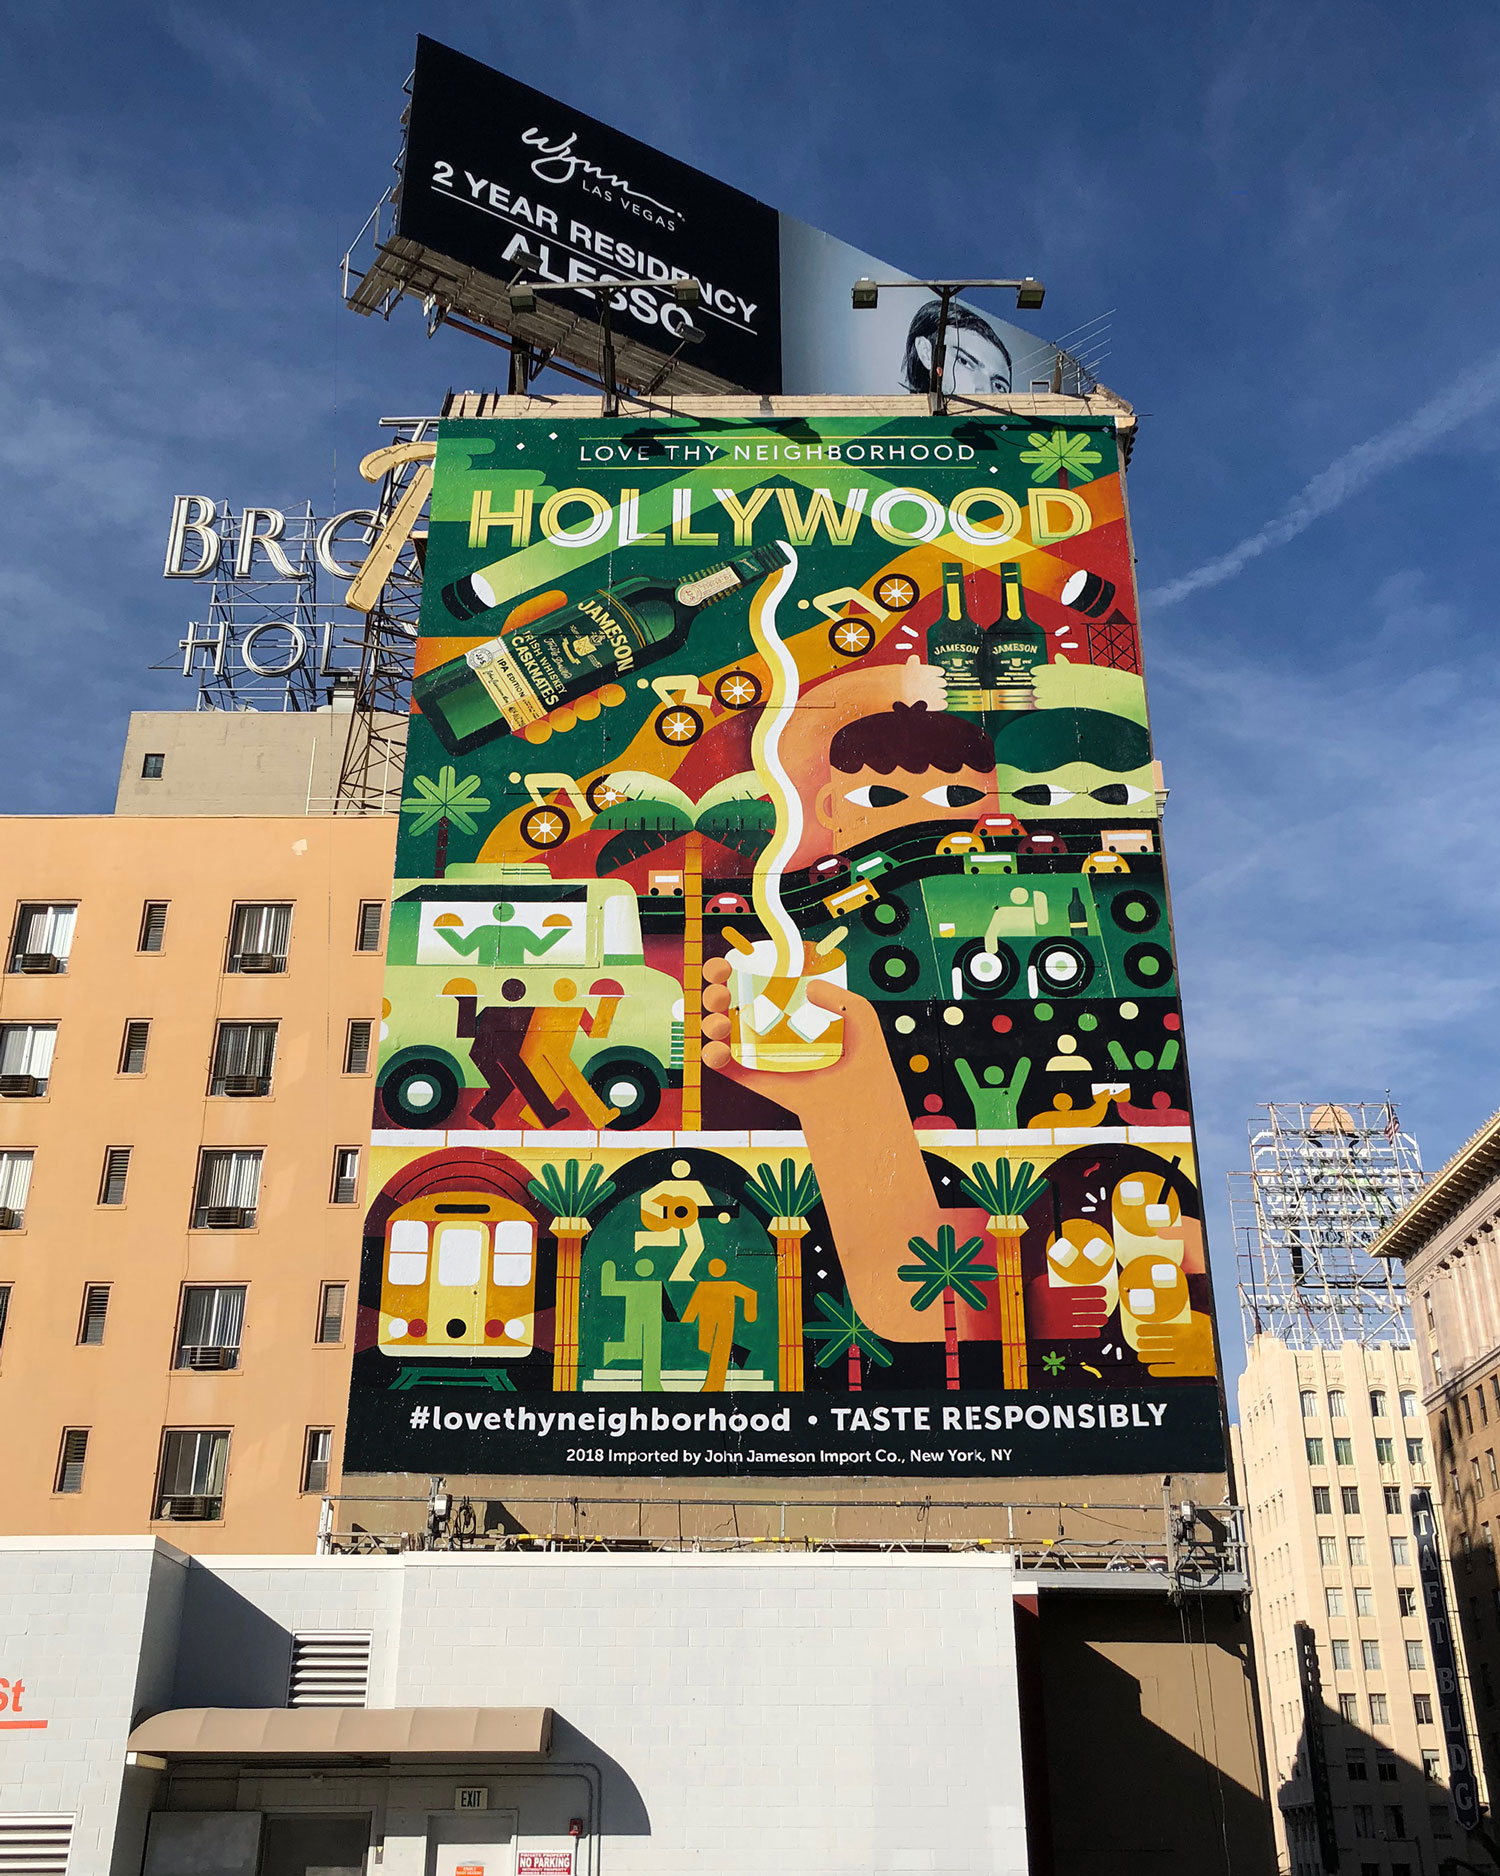 Colossal Media did a phenomenal job painting our illustration on this building near the corner of Hollywood Blvd. and Vine St.